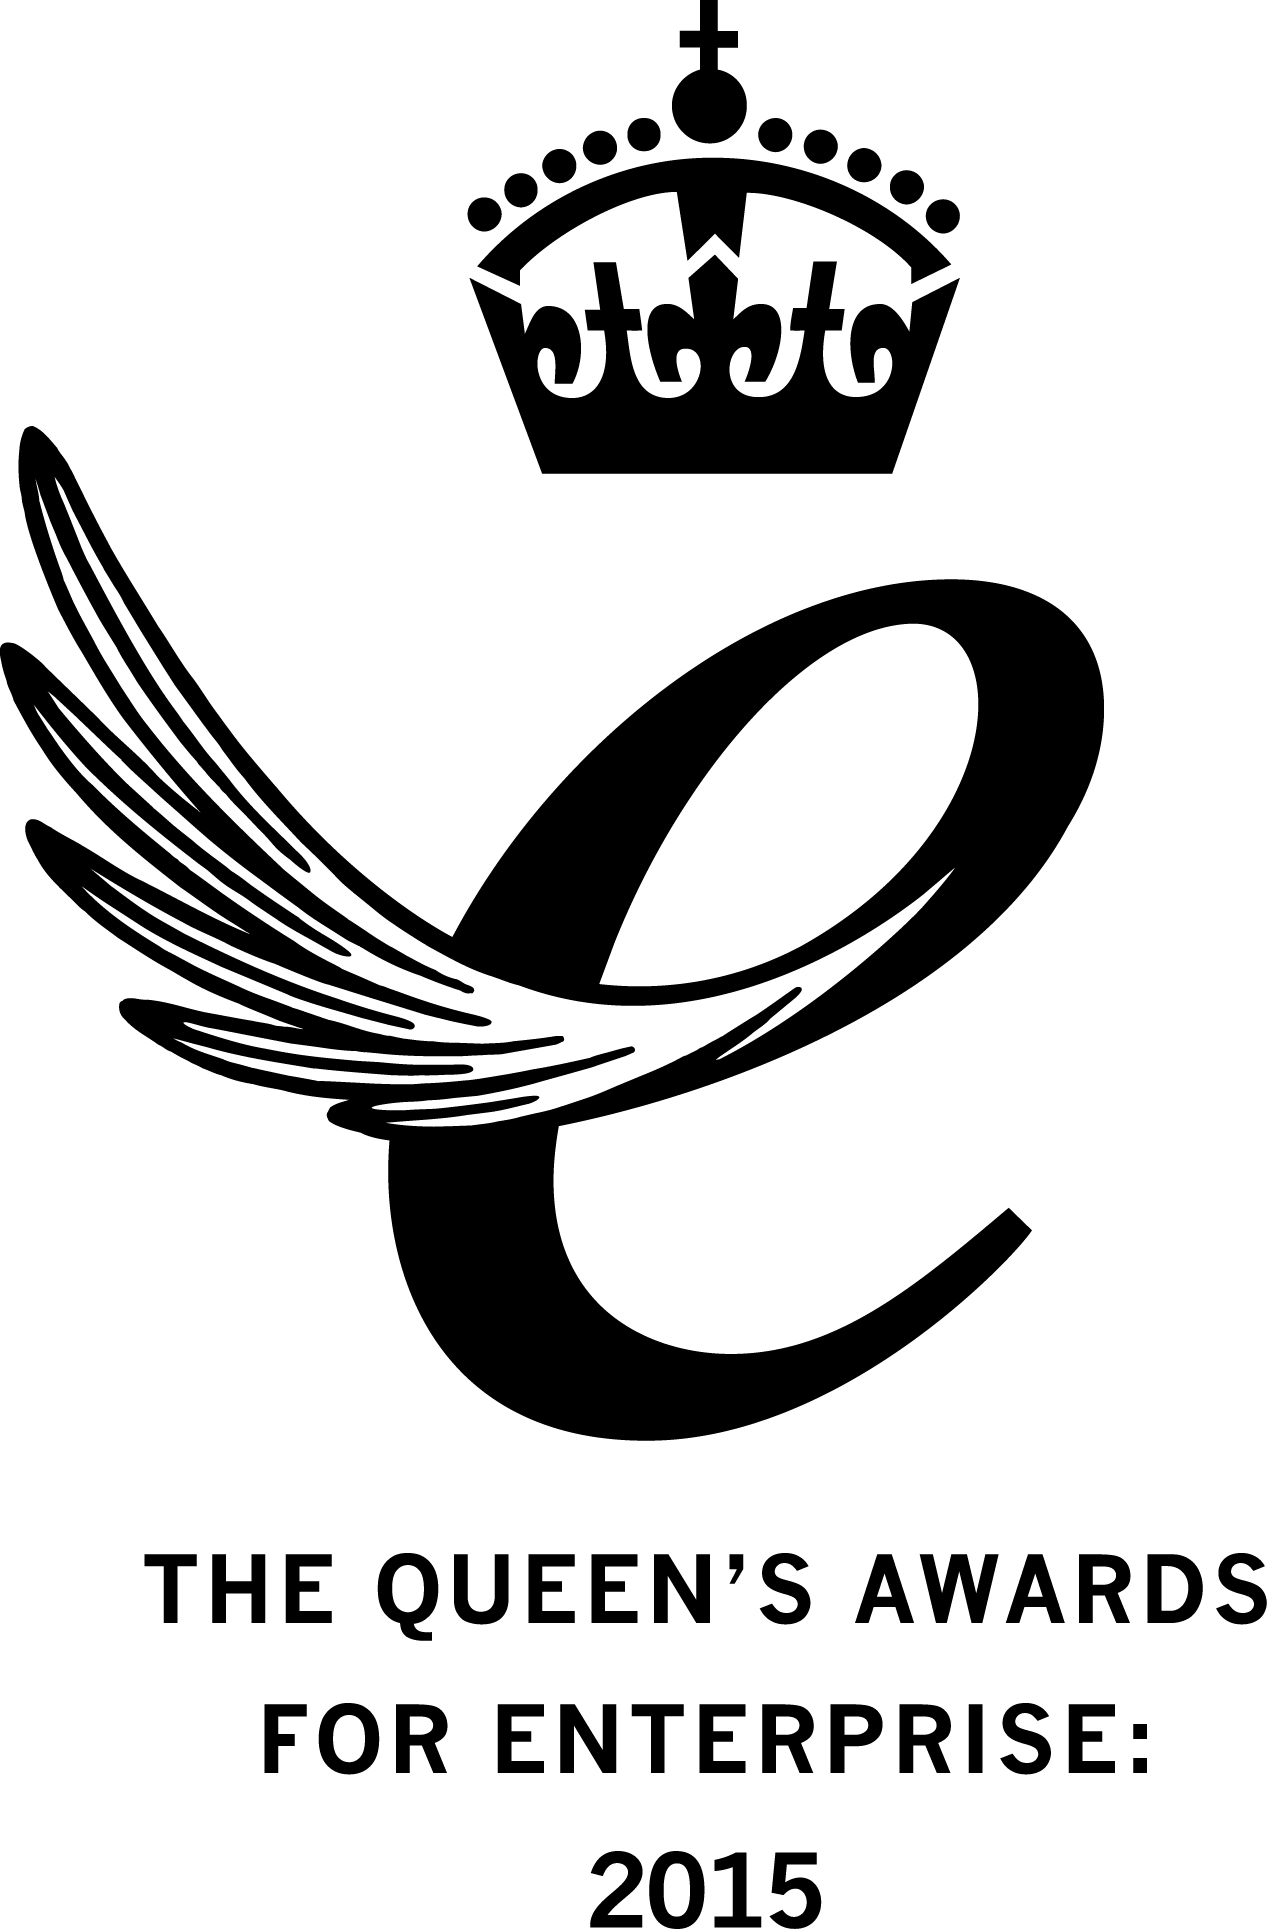 WINNER, THE QUEEN'S AWARD FOR ENTERPRISE 2015 – INNOVATION